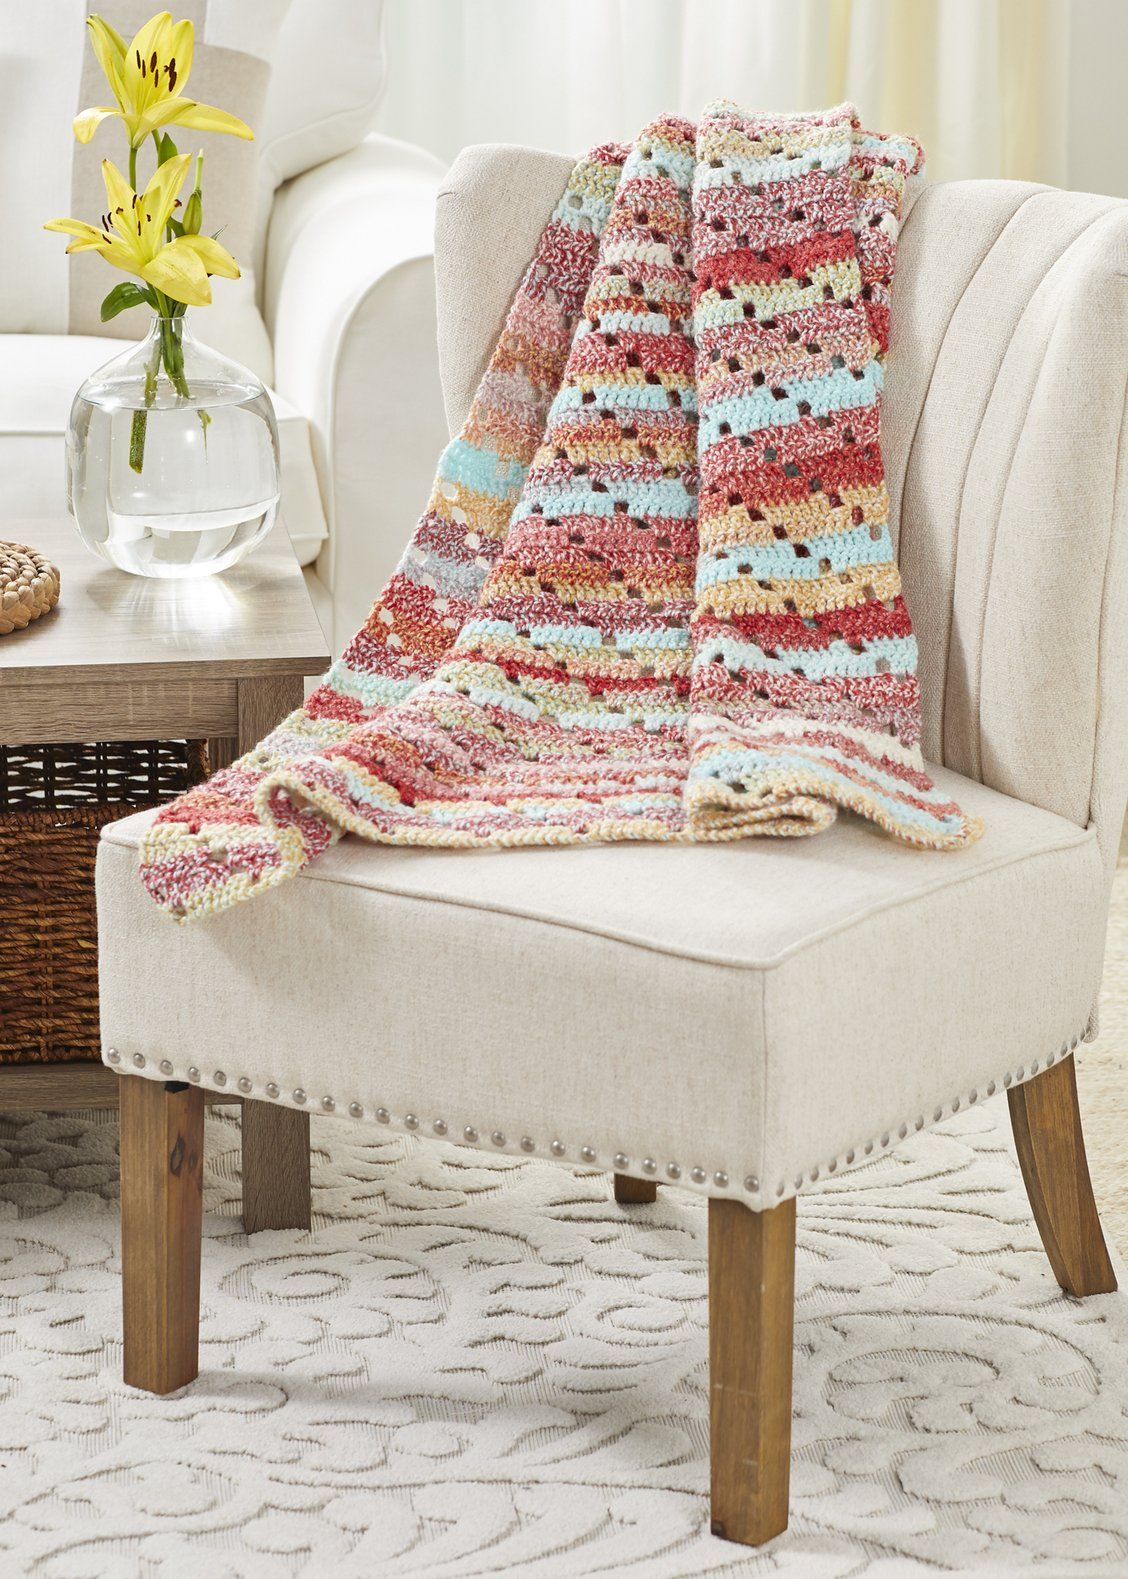 Sierra Keyhole Blanket Premier Yarns In 2020 Blanket Crochet For Home Needle Gauge